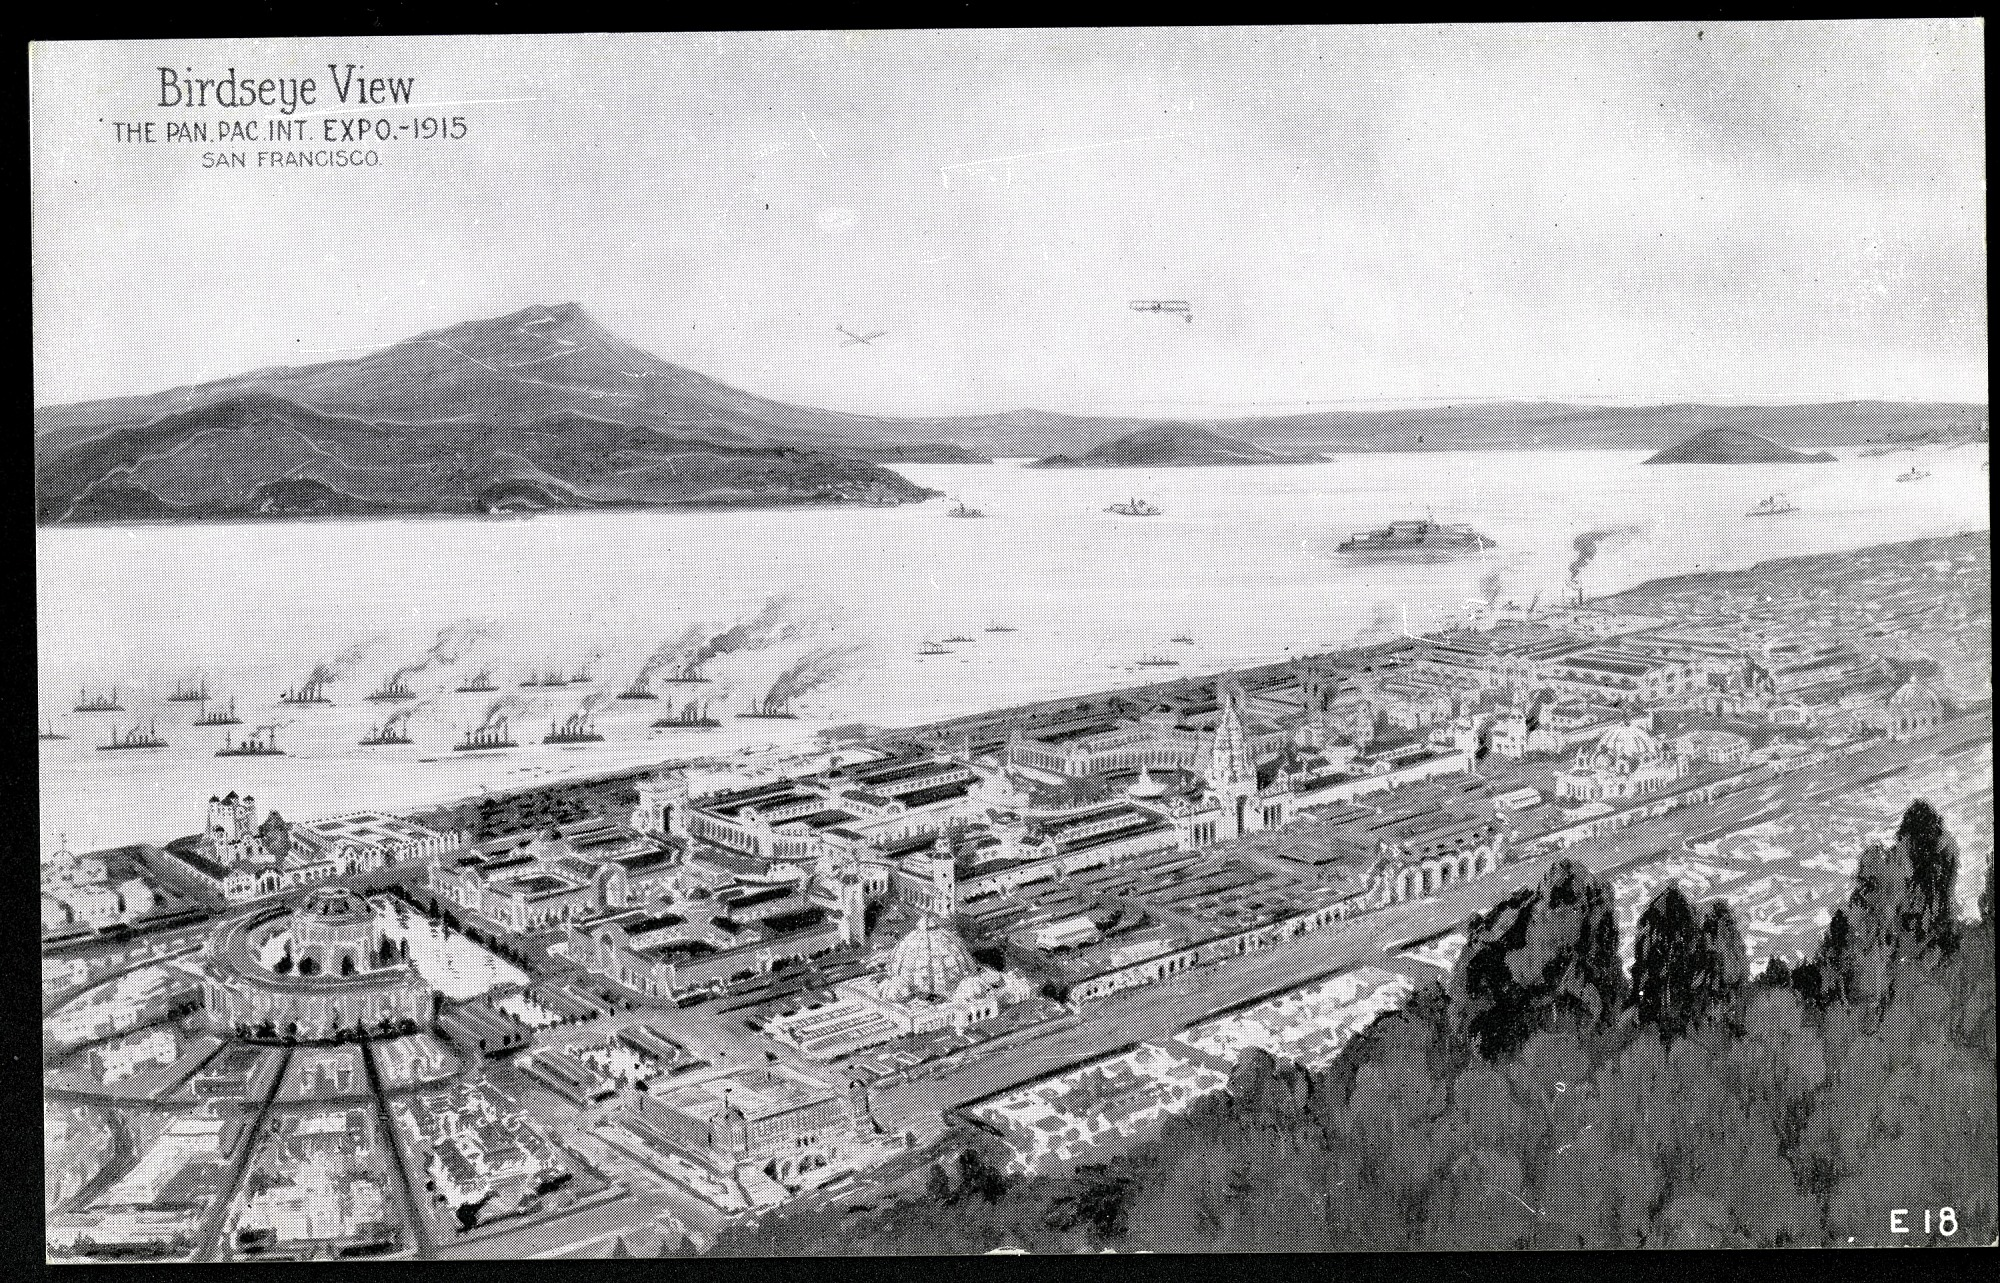 Birds-eye View Postcard from the Panama-Pacific Exposition